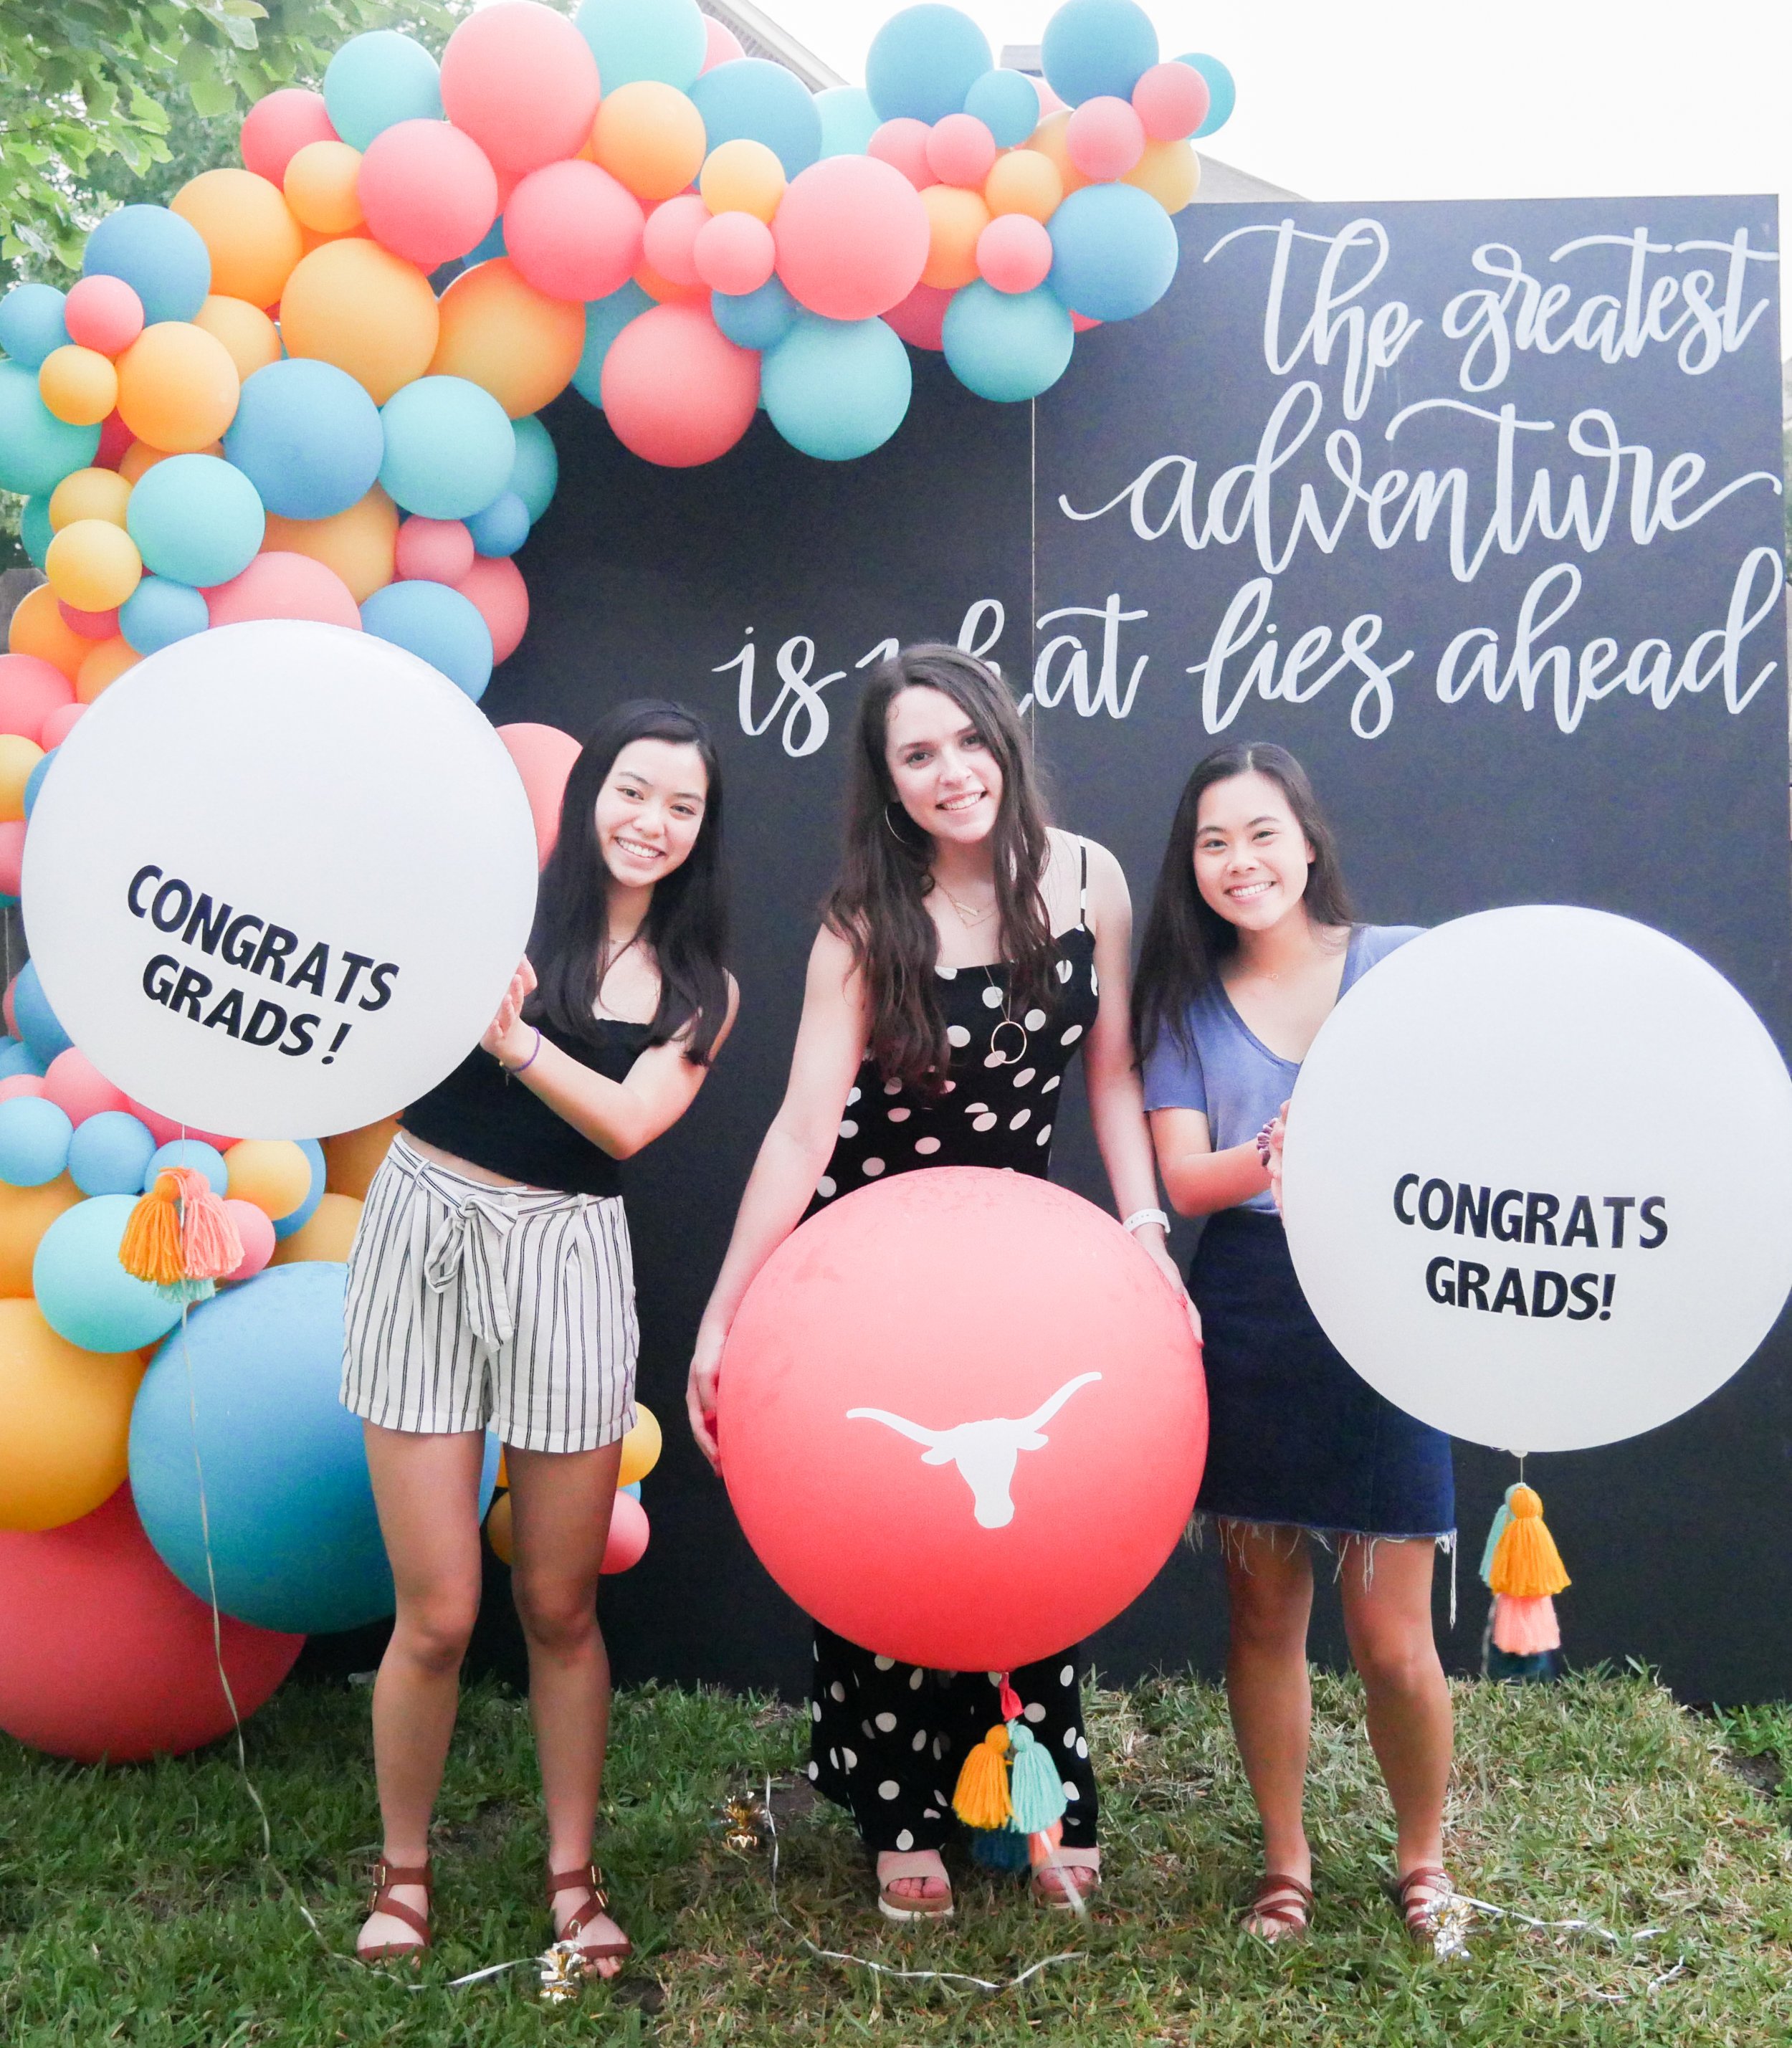 Big Balloons are the best photo booth prop for a graduation party photo booth. See more from this Grad Party on Mint Event Design www.minteventdesign.com #graduationparty #graduationpartyideas #graduation #gradparty #gradpartyideas #partyballoons #balloongarland #photobooth #photobackdrop